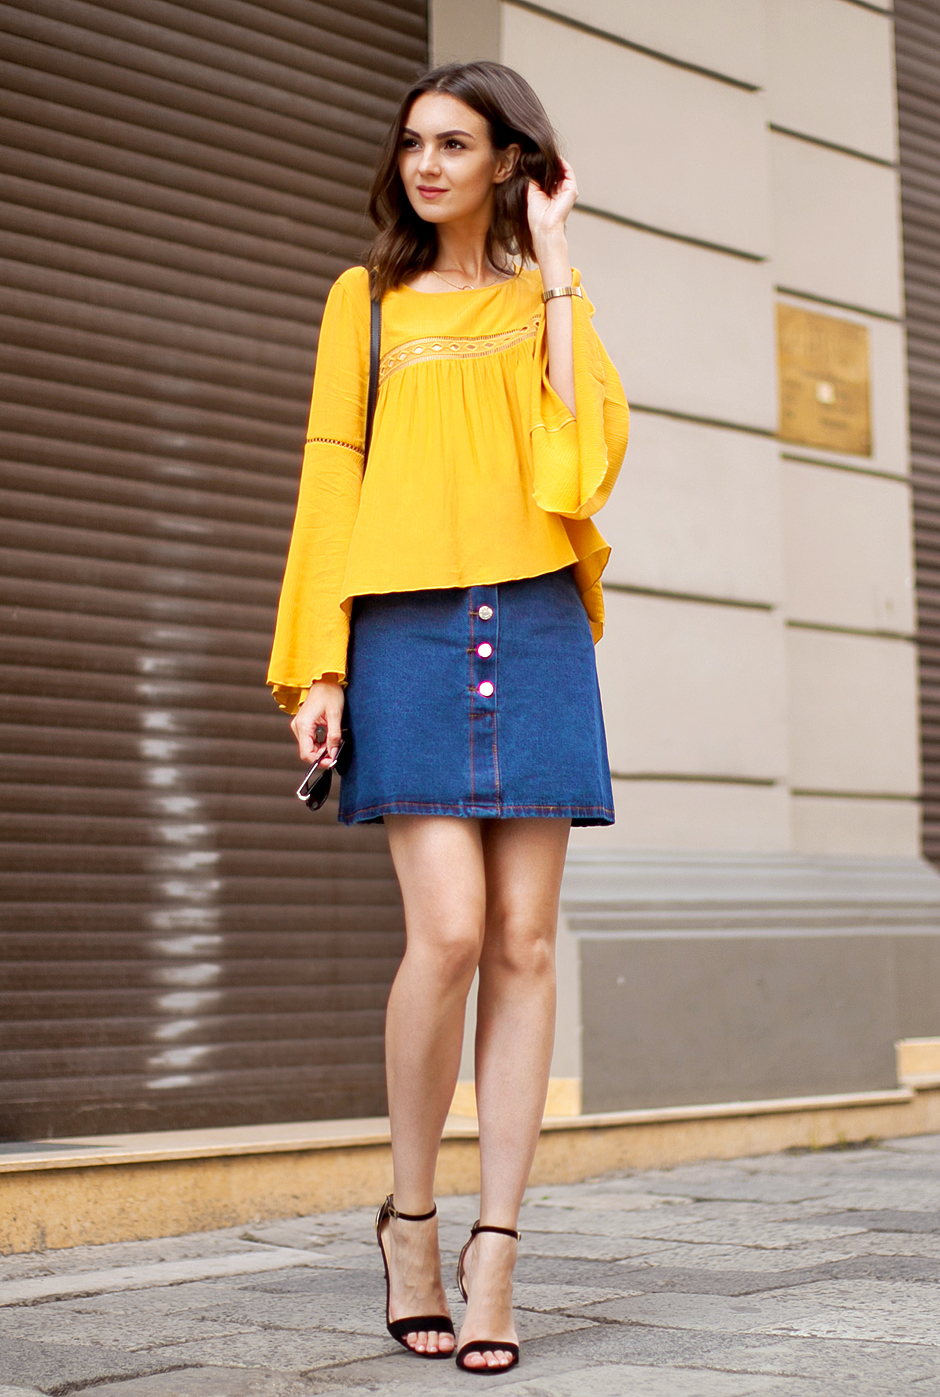 denim-skirt-70s-fashion-blog-daily-outfits